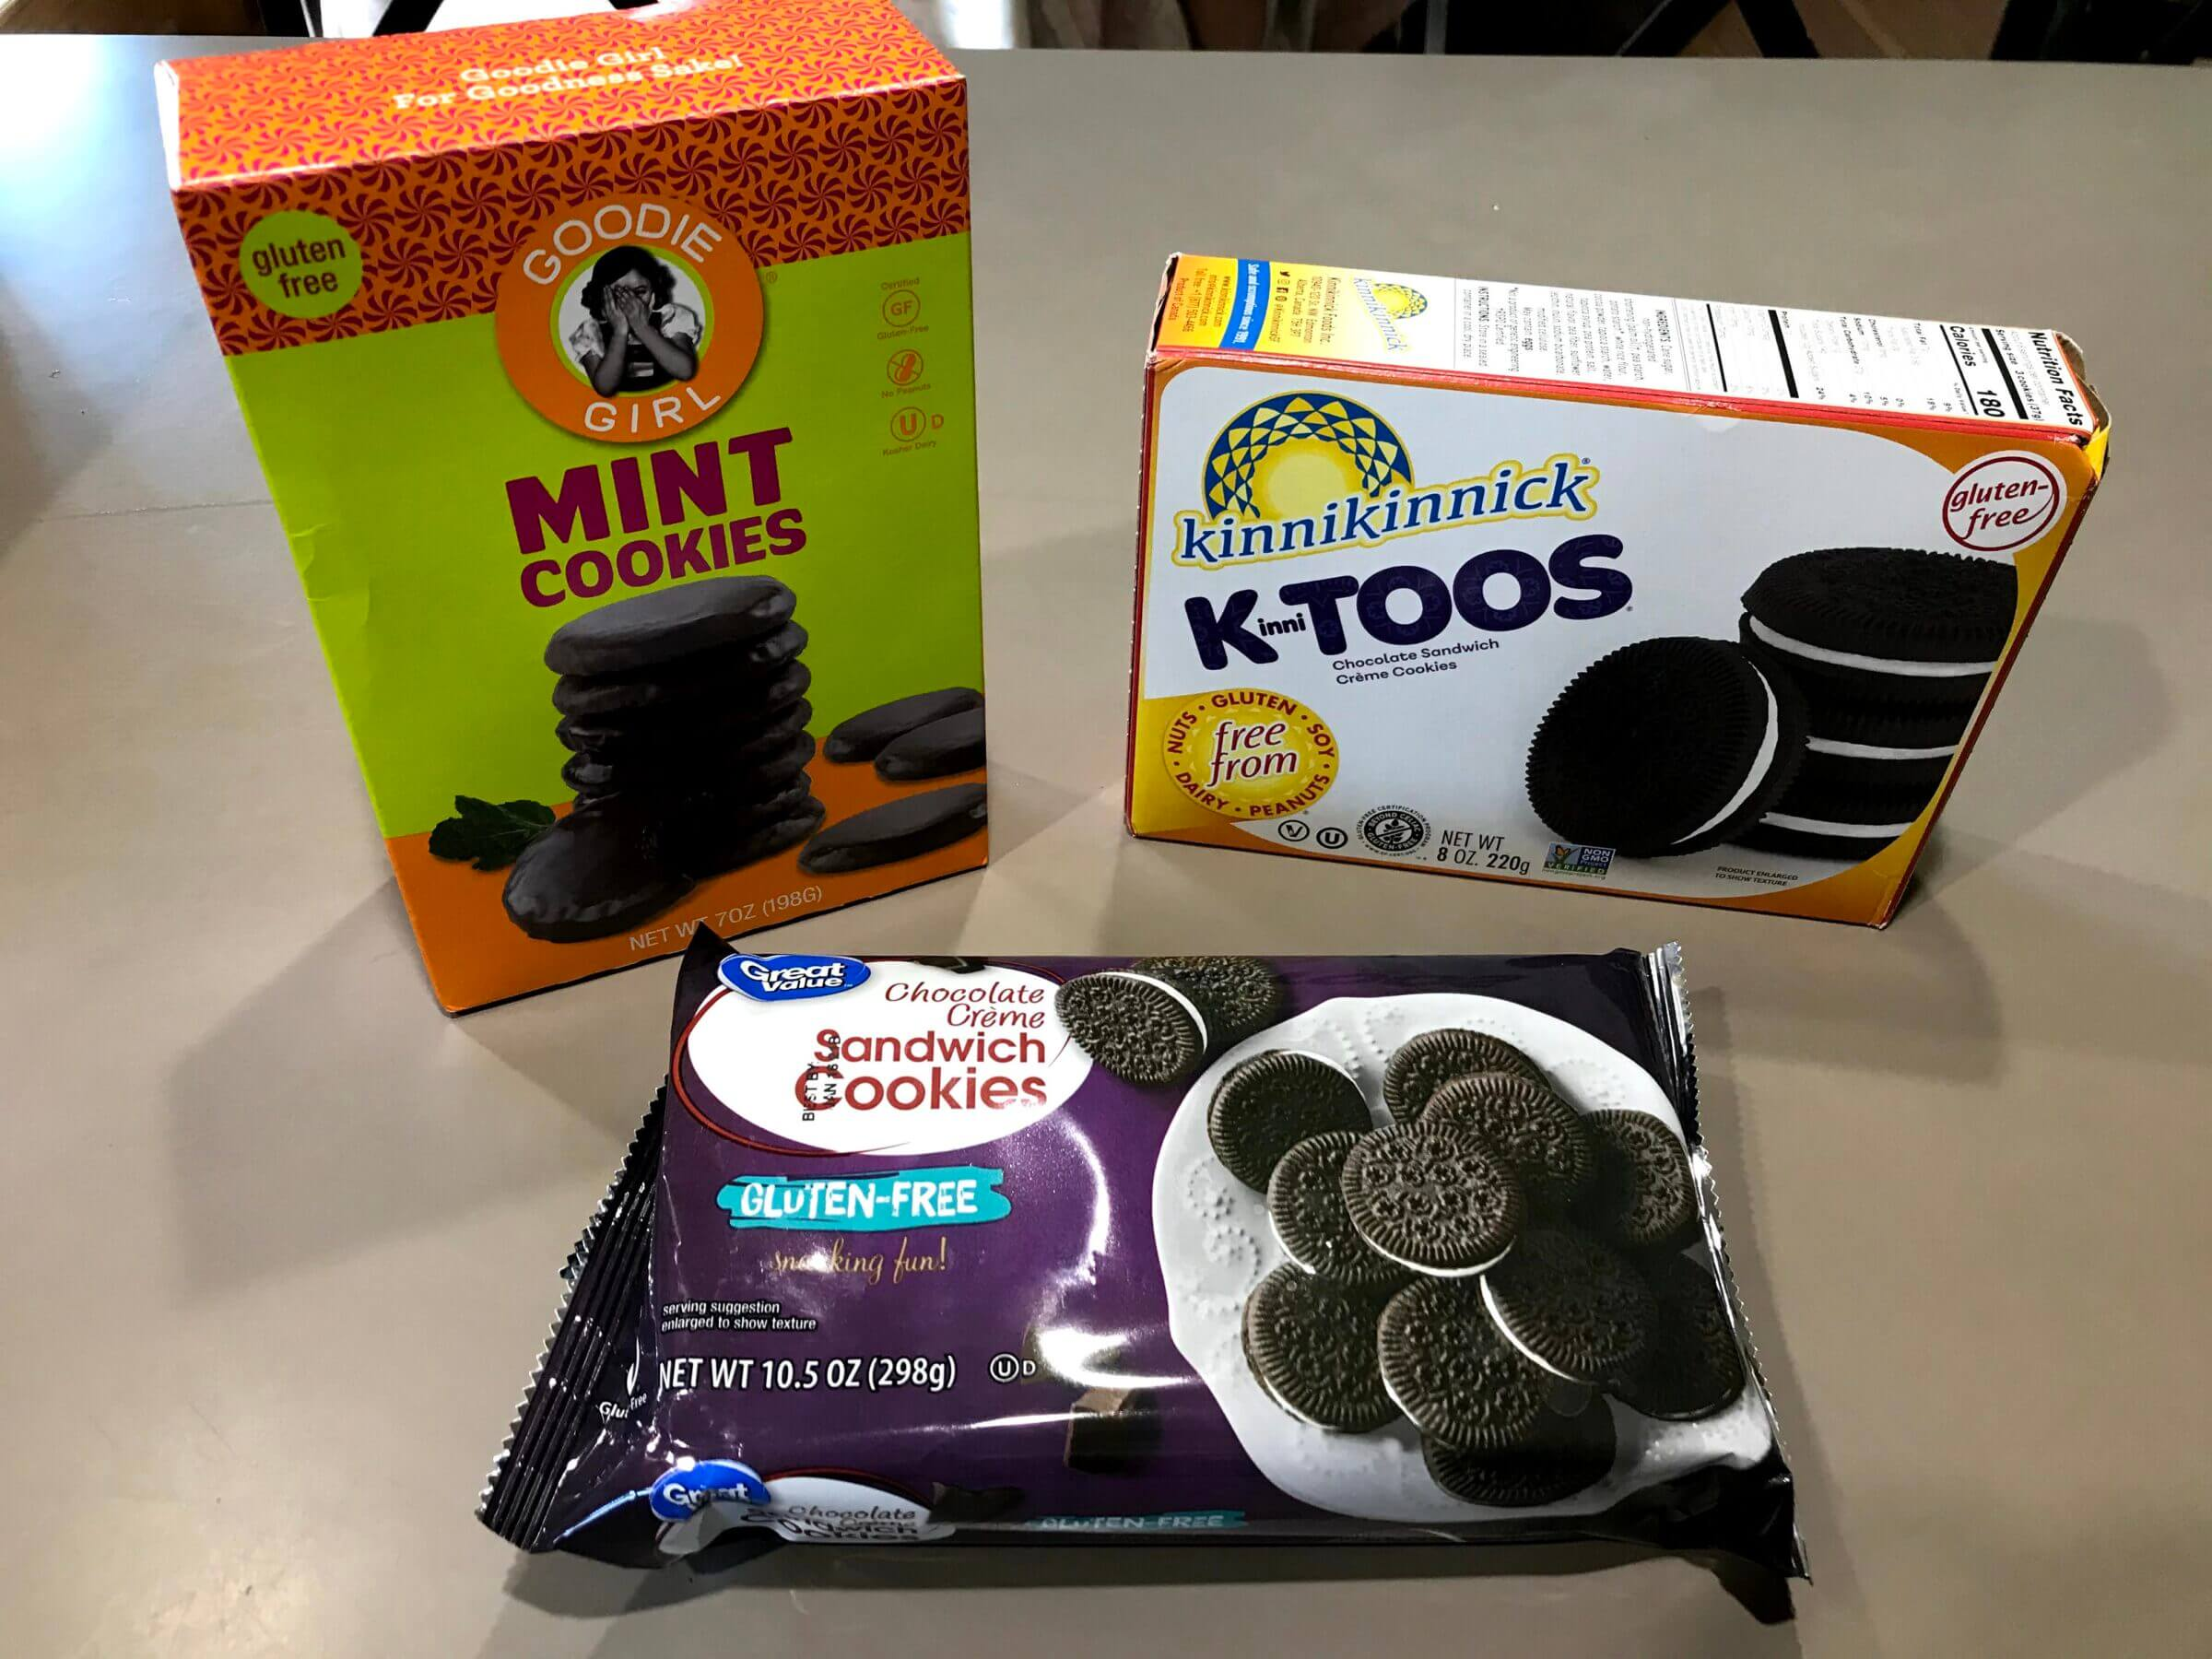 Gluten free cookies including Goodie Girl, Kinnikinnick, and Great Value brands